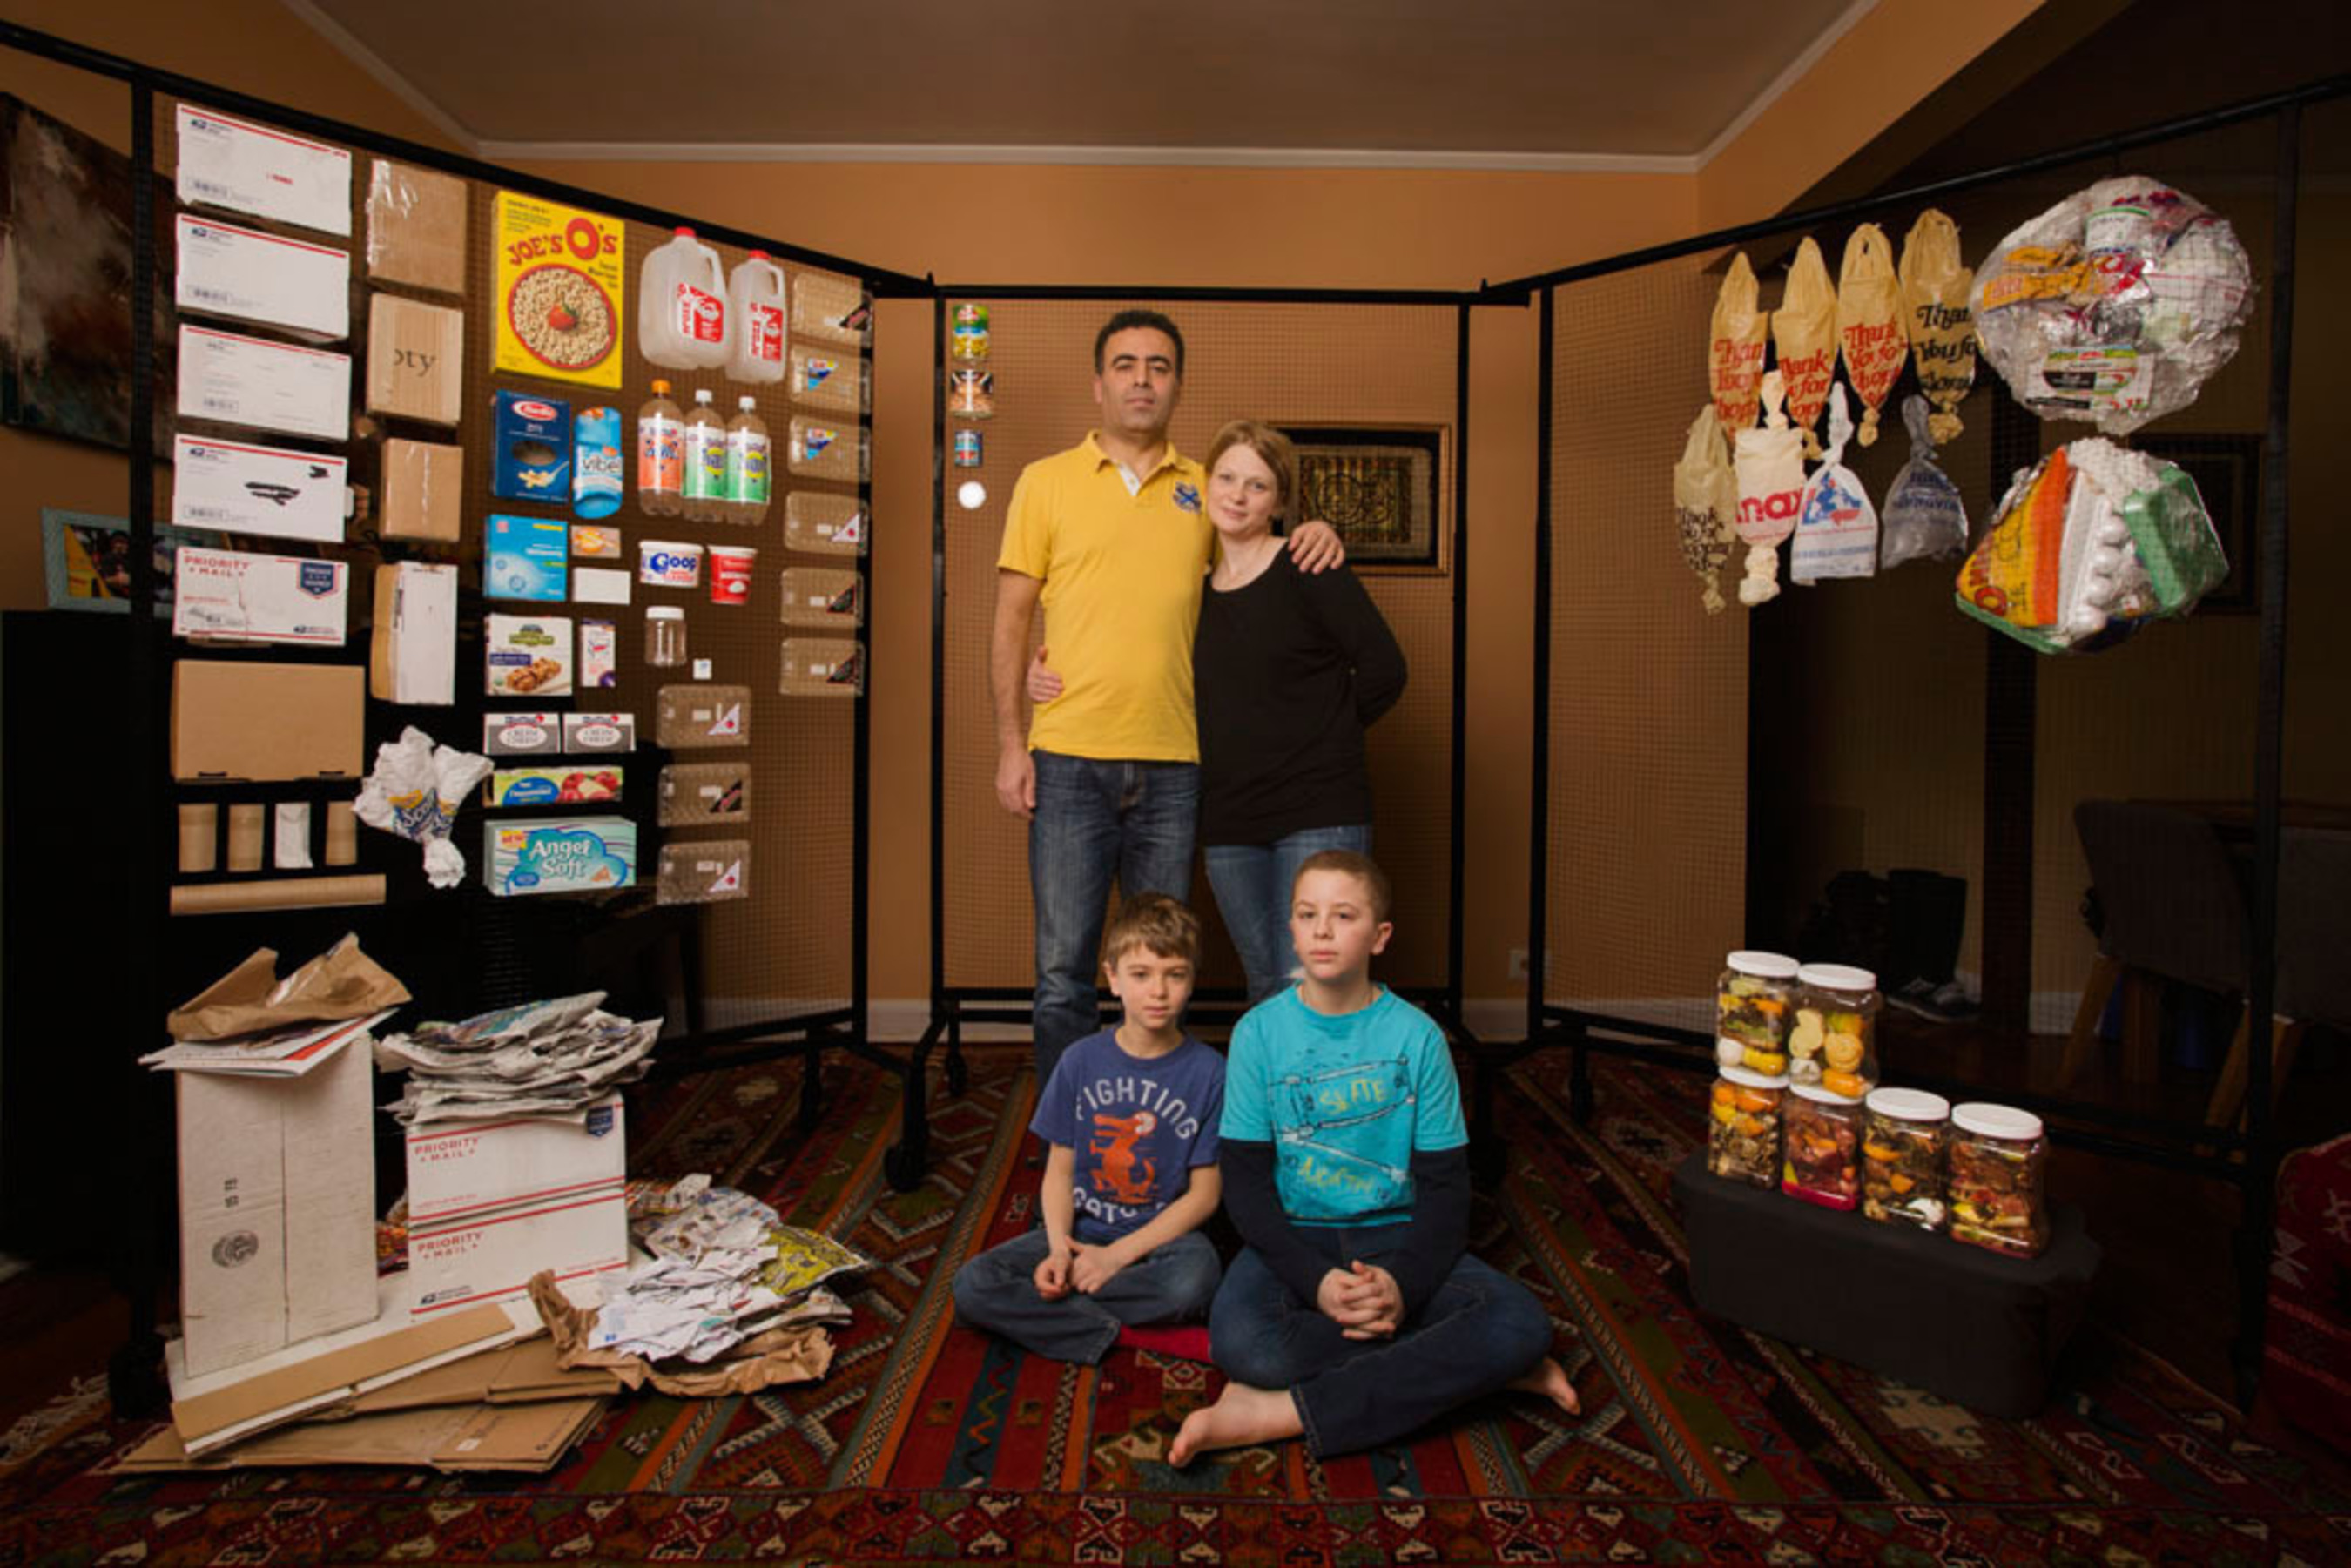 Yuliya Radchenko and Walid Halabi of NYC, New York, with their children Zacharia, 7, and Khalid, 11, surrounded by a week's worth of their recyclables and landfill trash, in February. Recyclable items are on the left-hand side of the photo. Items destined for landfill are to the right. Their total household waste for this week was 21 lb. Fifty-two percent of it (10.9 lb) was landfill and forty-eight percent of it was recyclables (10.1 lb).  (PRNewsFoto/The GLAD Products Company)